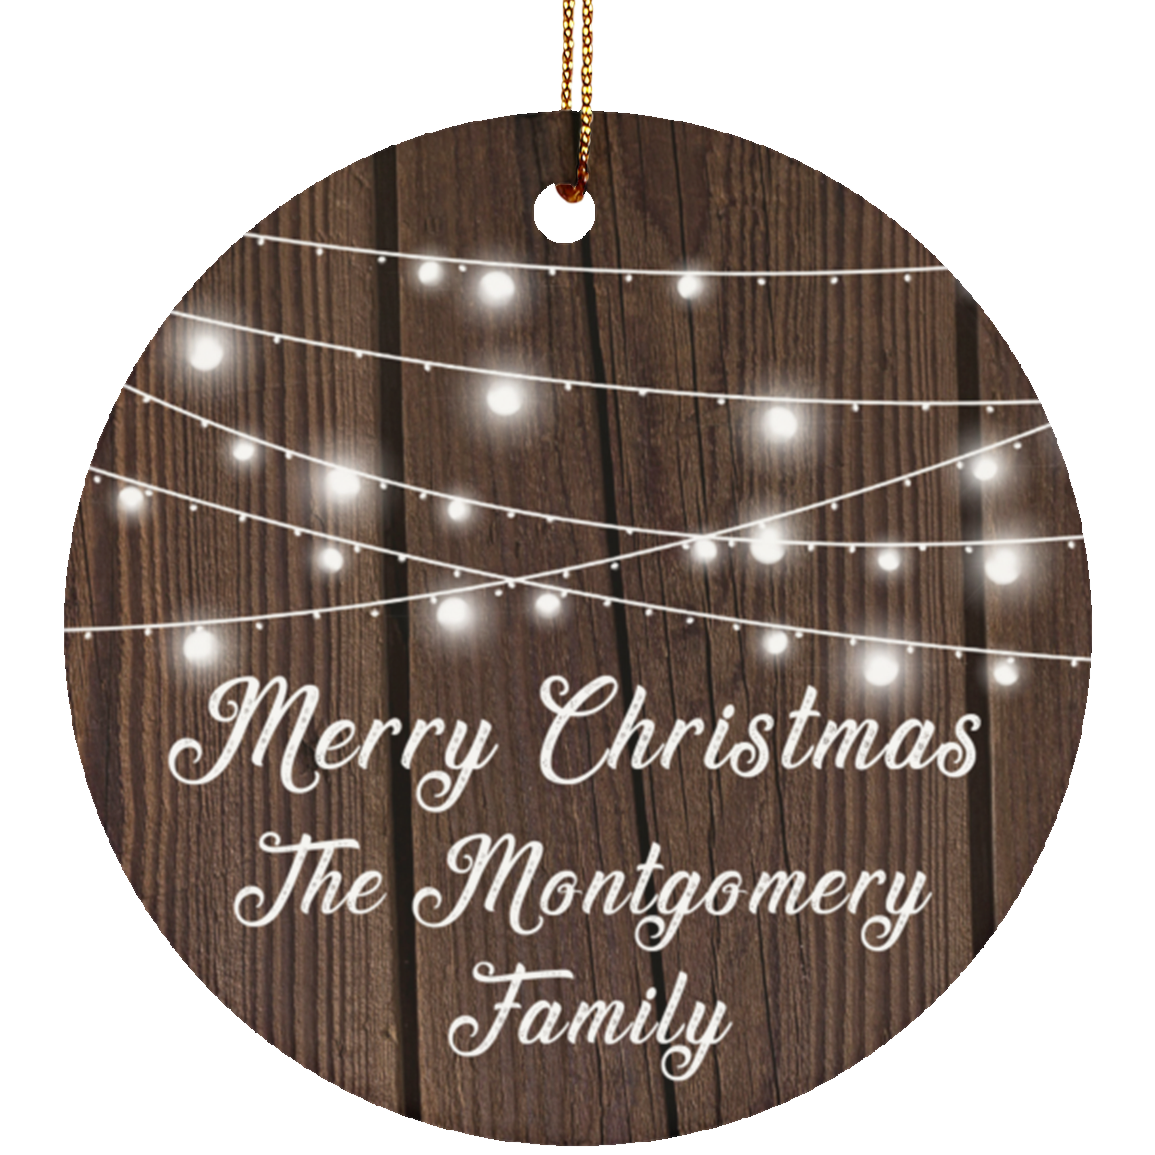 Merry Christmas The Montgomery Family - Circle Ornament